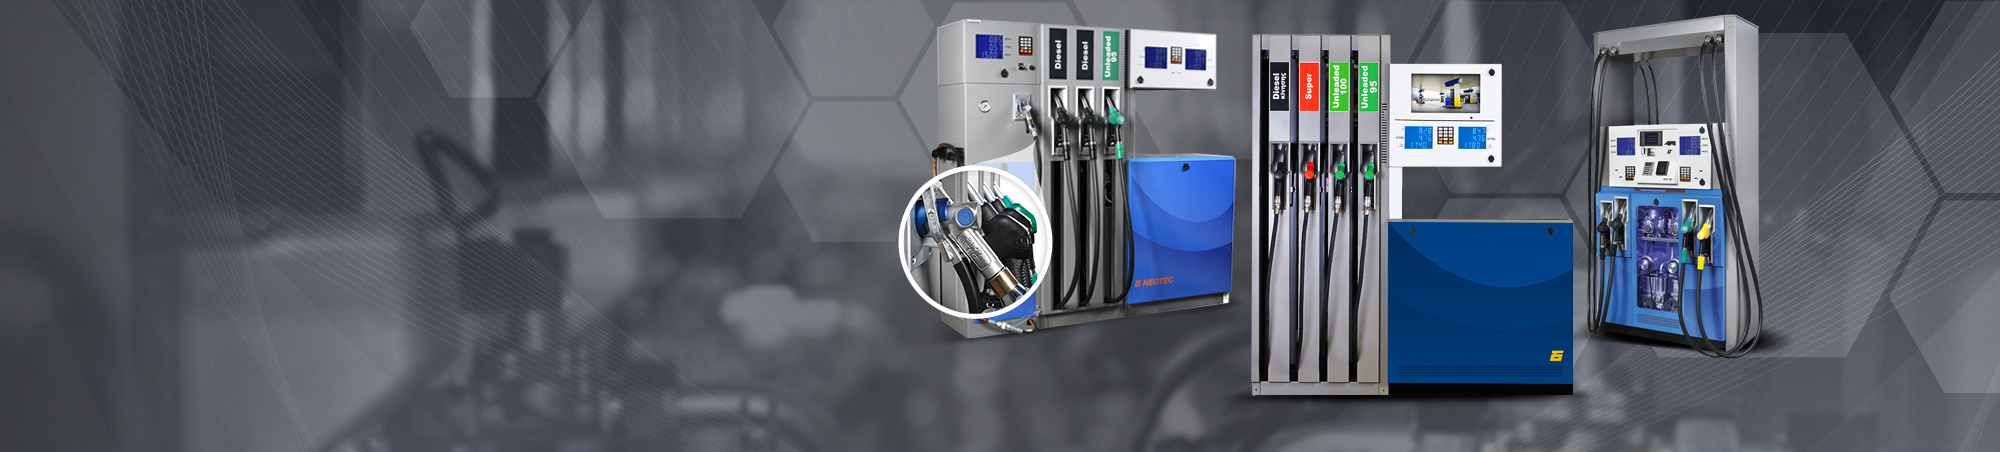 Fuel Pumps & Dispensers